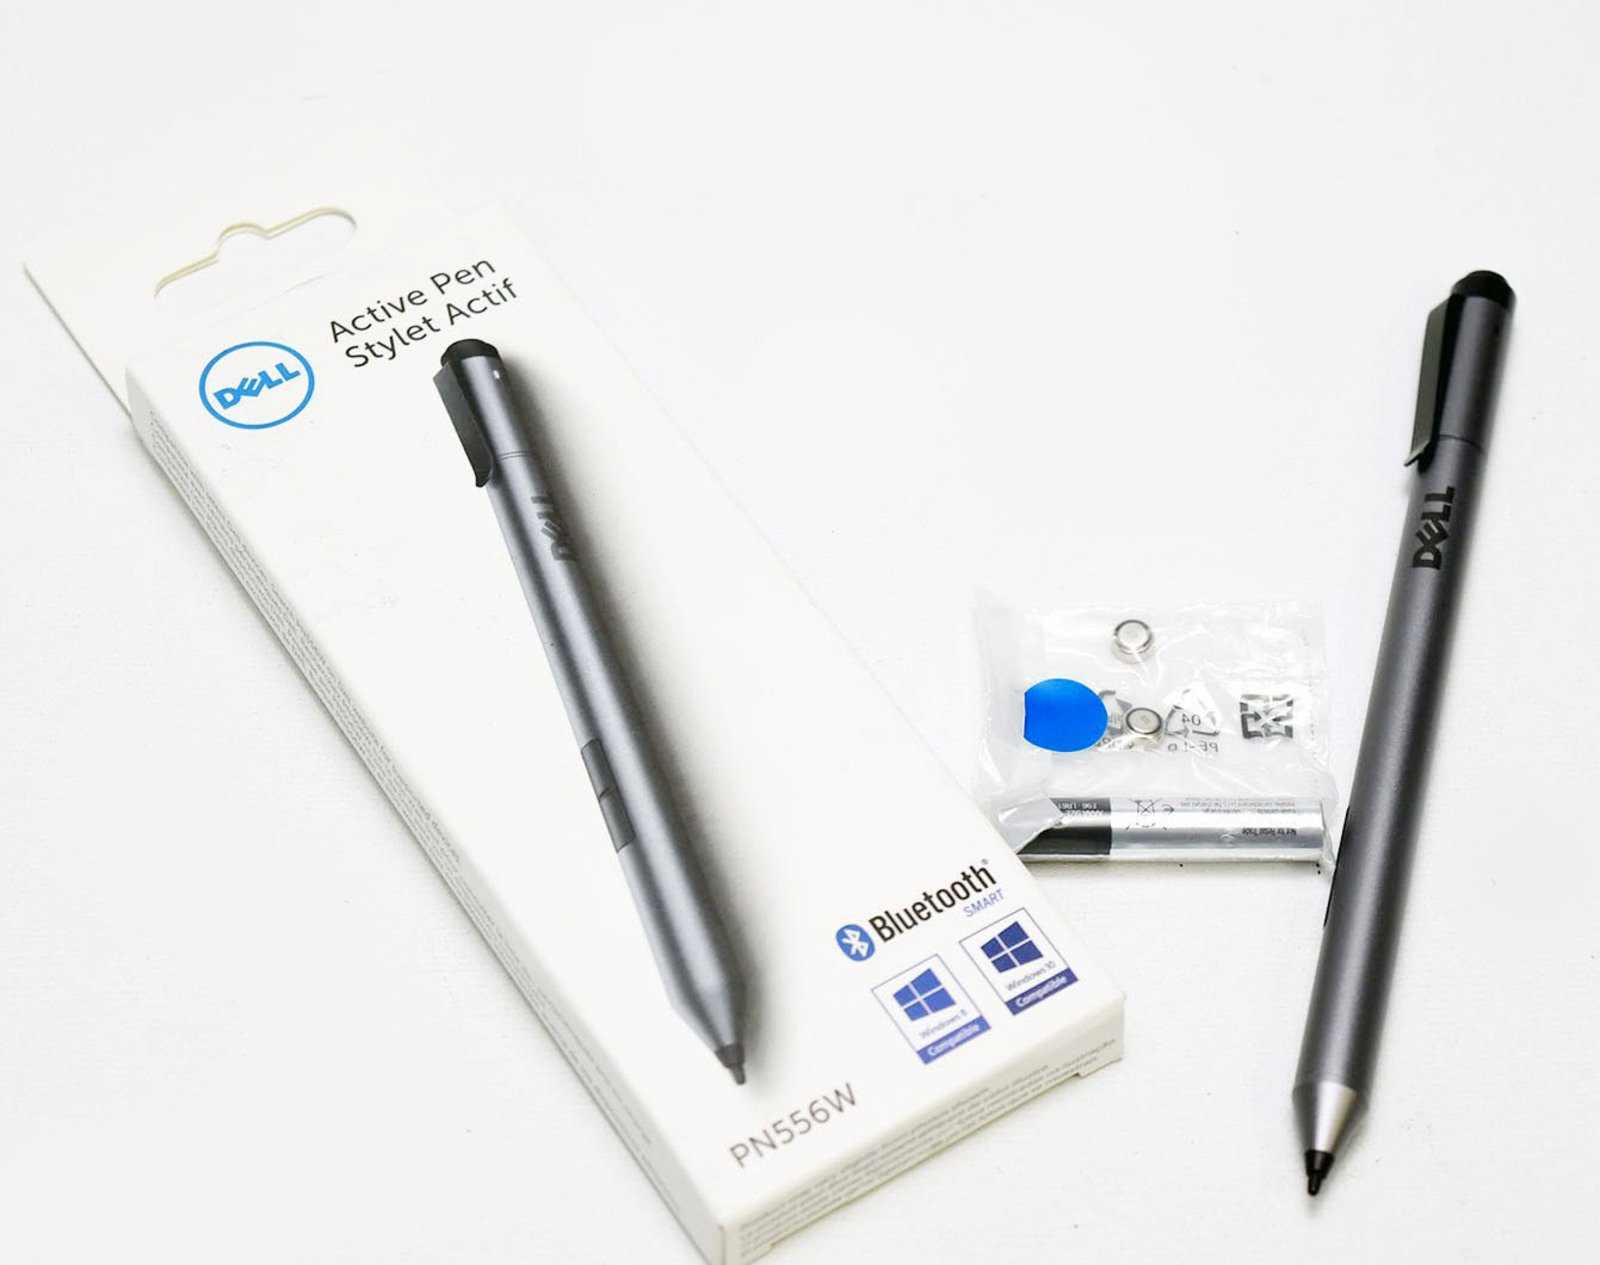 New 6D5GT Genuine Dell PN556W Active Stylus Pen Bluetooth XPS 12 9365 Venue 8/10 Pro Latitude 7275 3189 Latitude 11 5175 / 5179 Inspiron 7568 FHD Design Daily Computing Professional US6483 5000 Series by Aquamoon Trading